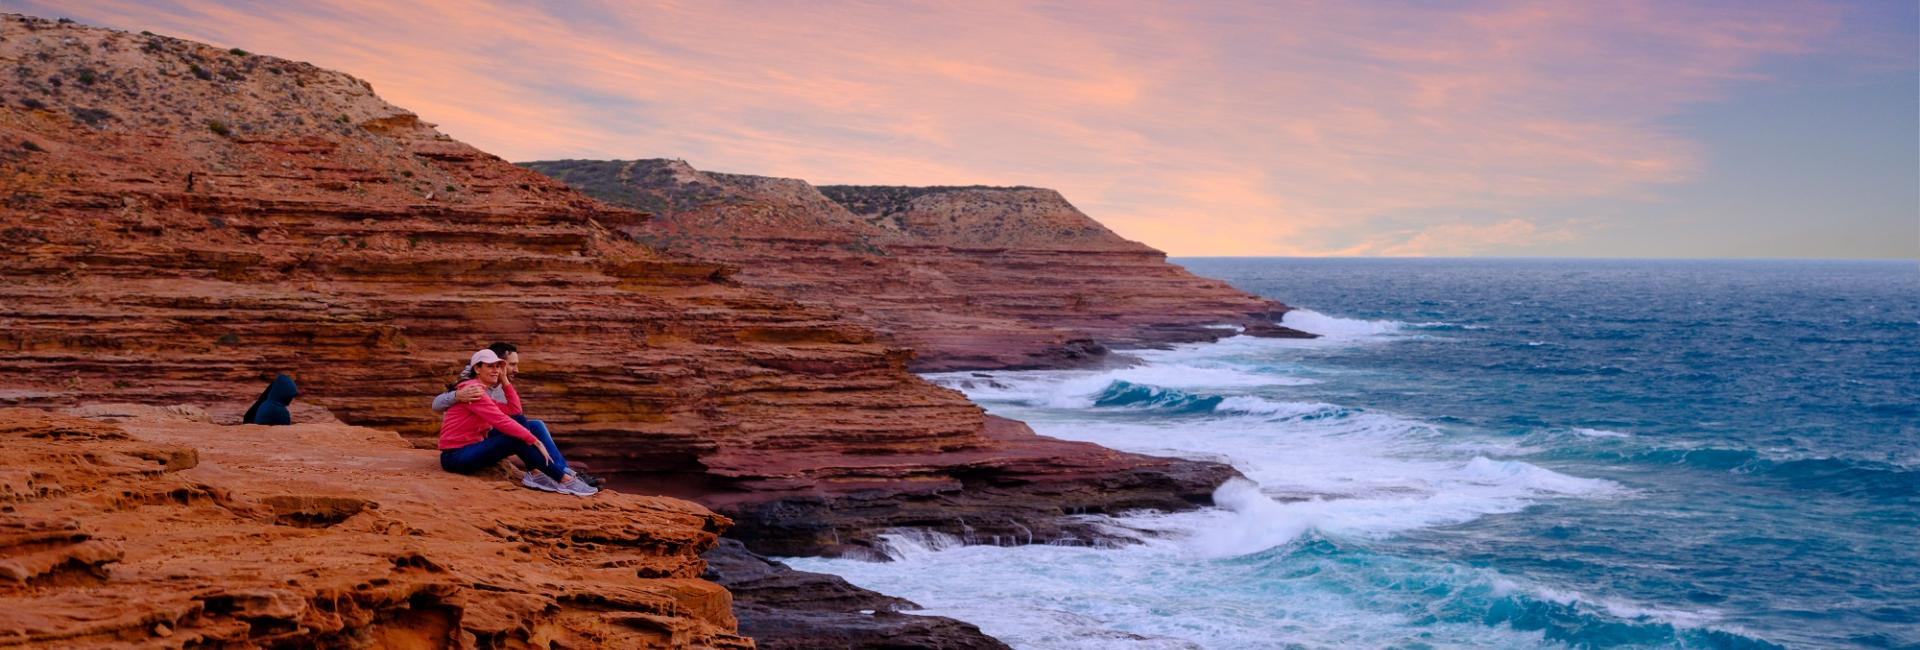 Kalbarri National Park Western Australia Red Bluff Coastal Cliff couple